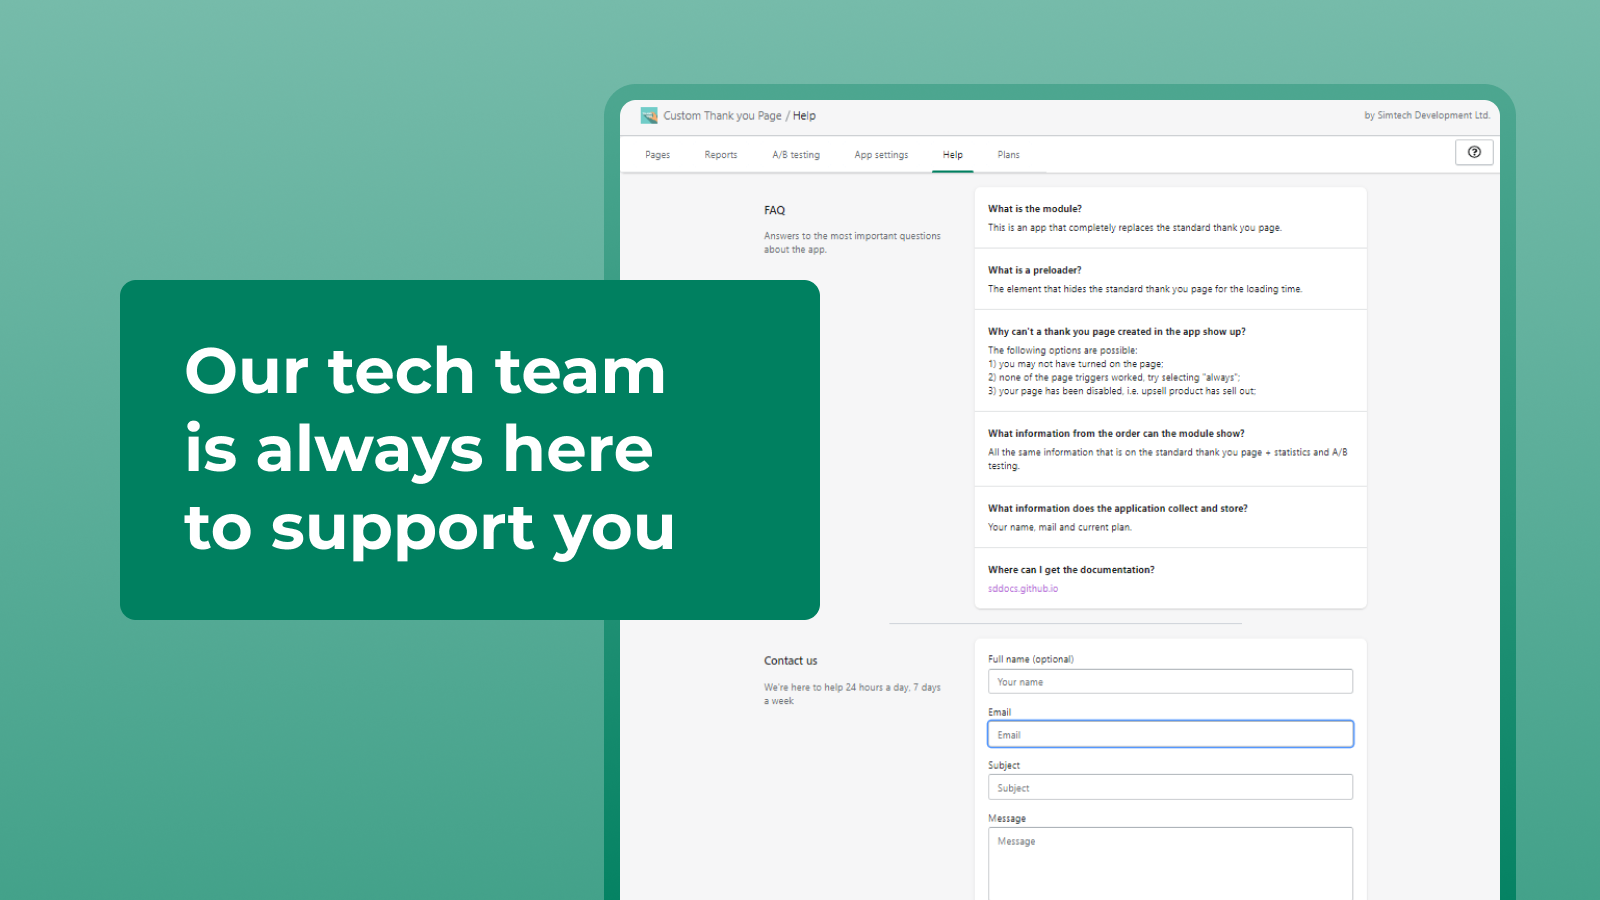 Our tech team is always here to support you